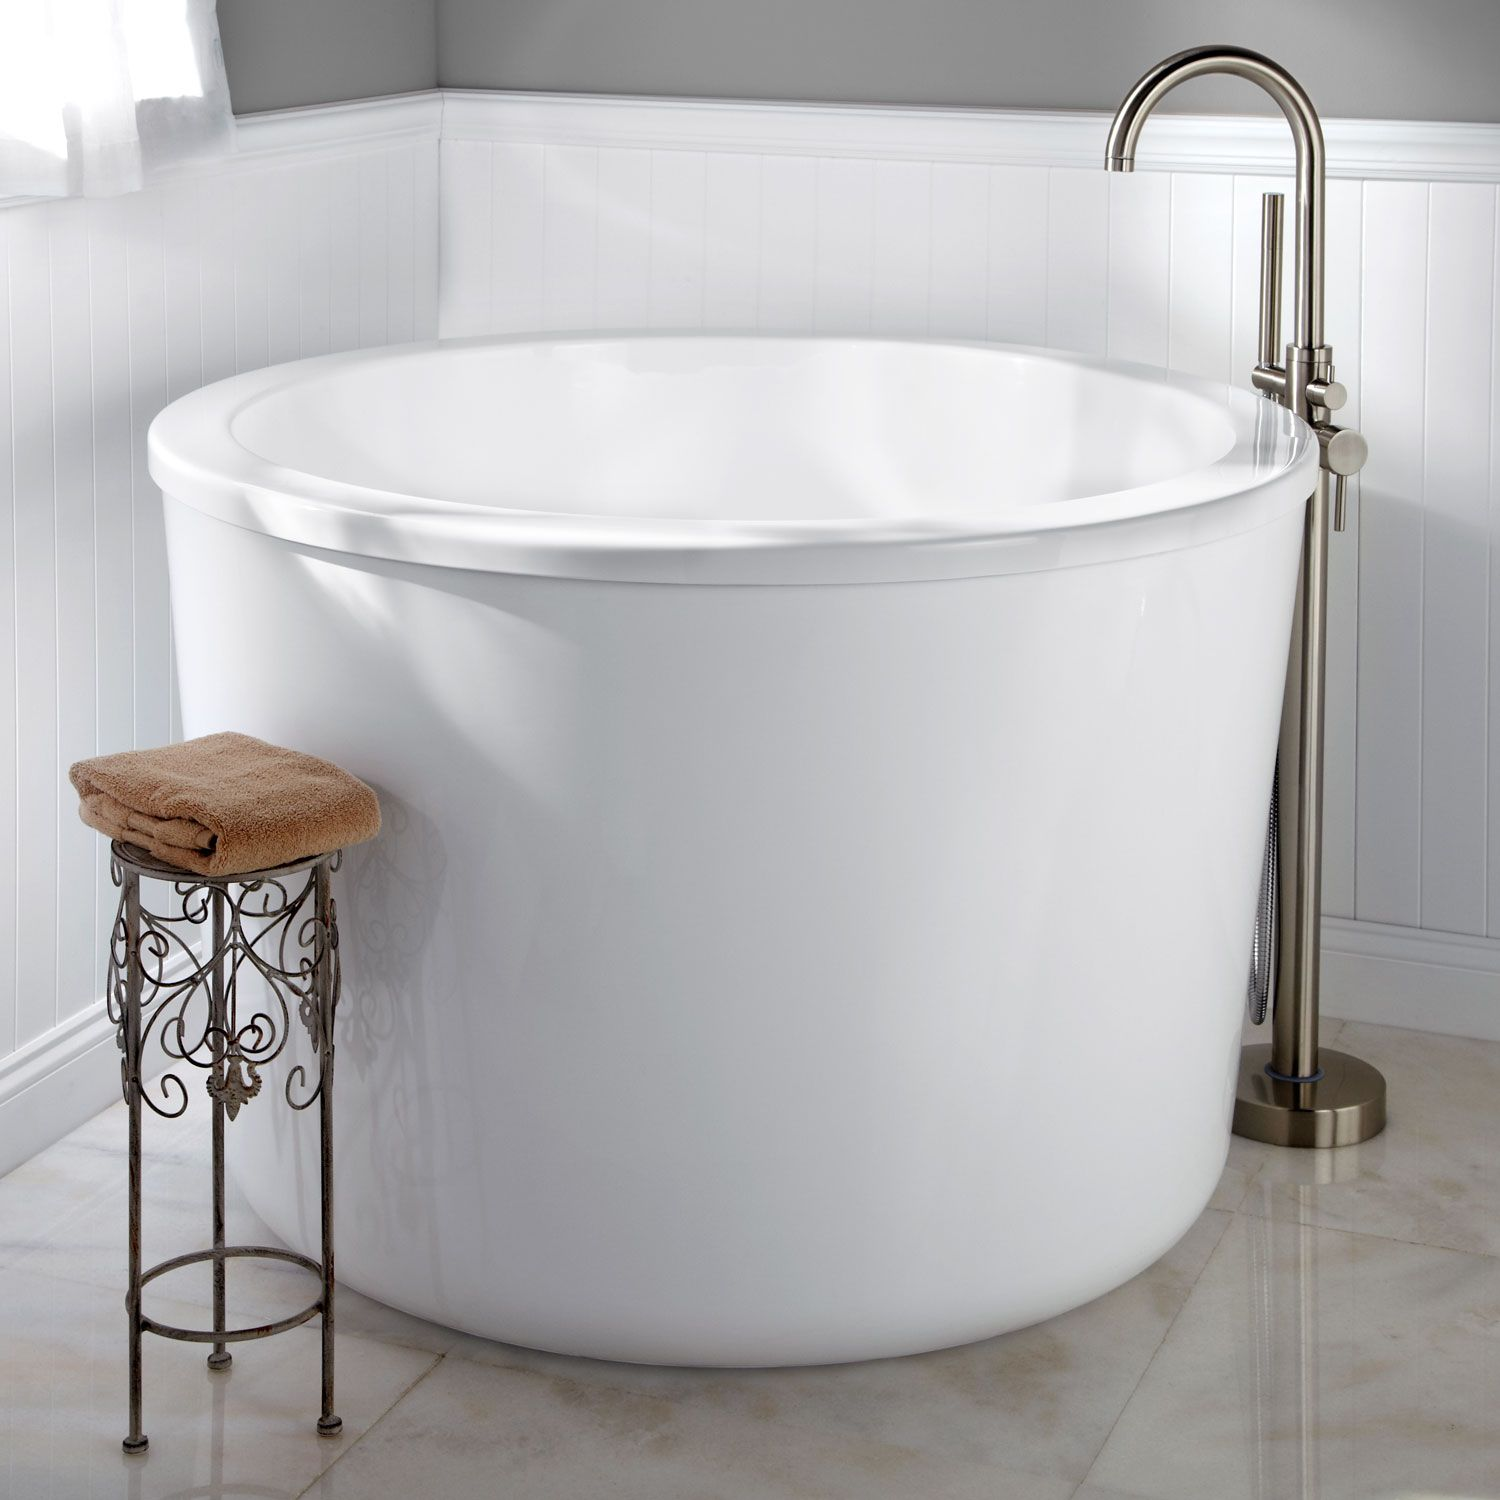 Mini Badewannen Kleine Bäder 41 Quot Siglo Round Japanese Soaking Tub I Like To Live In